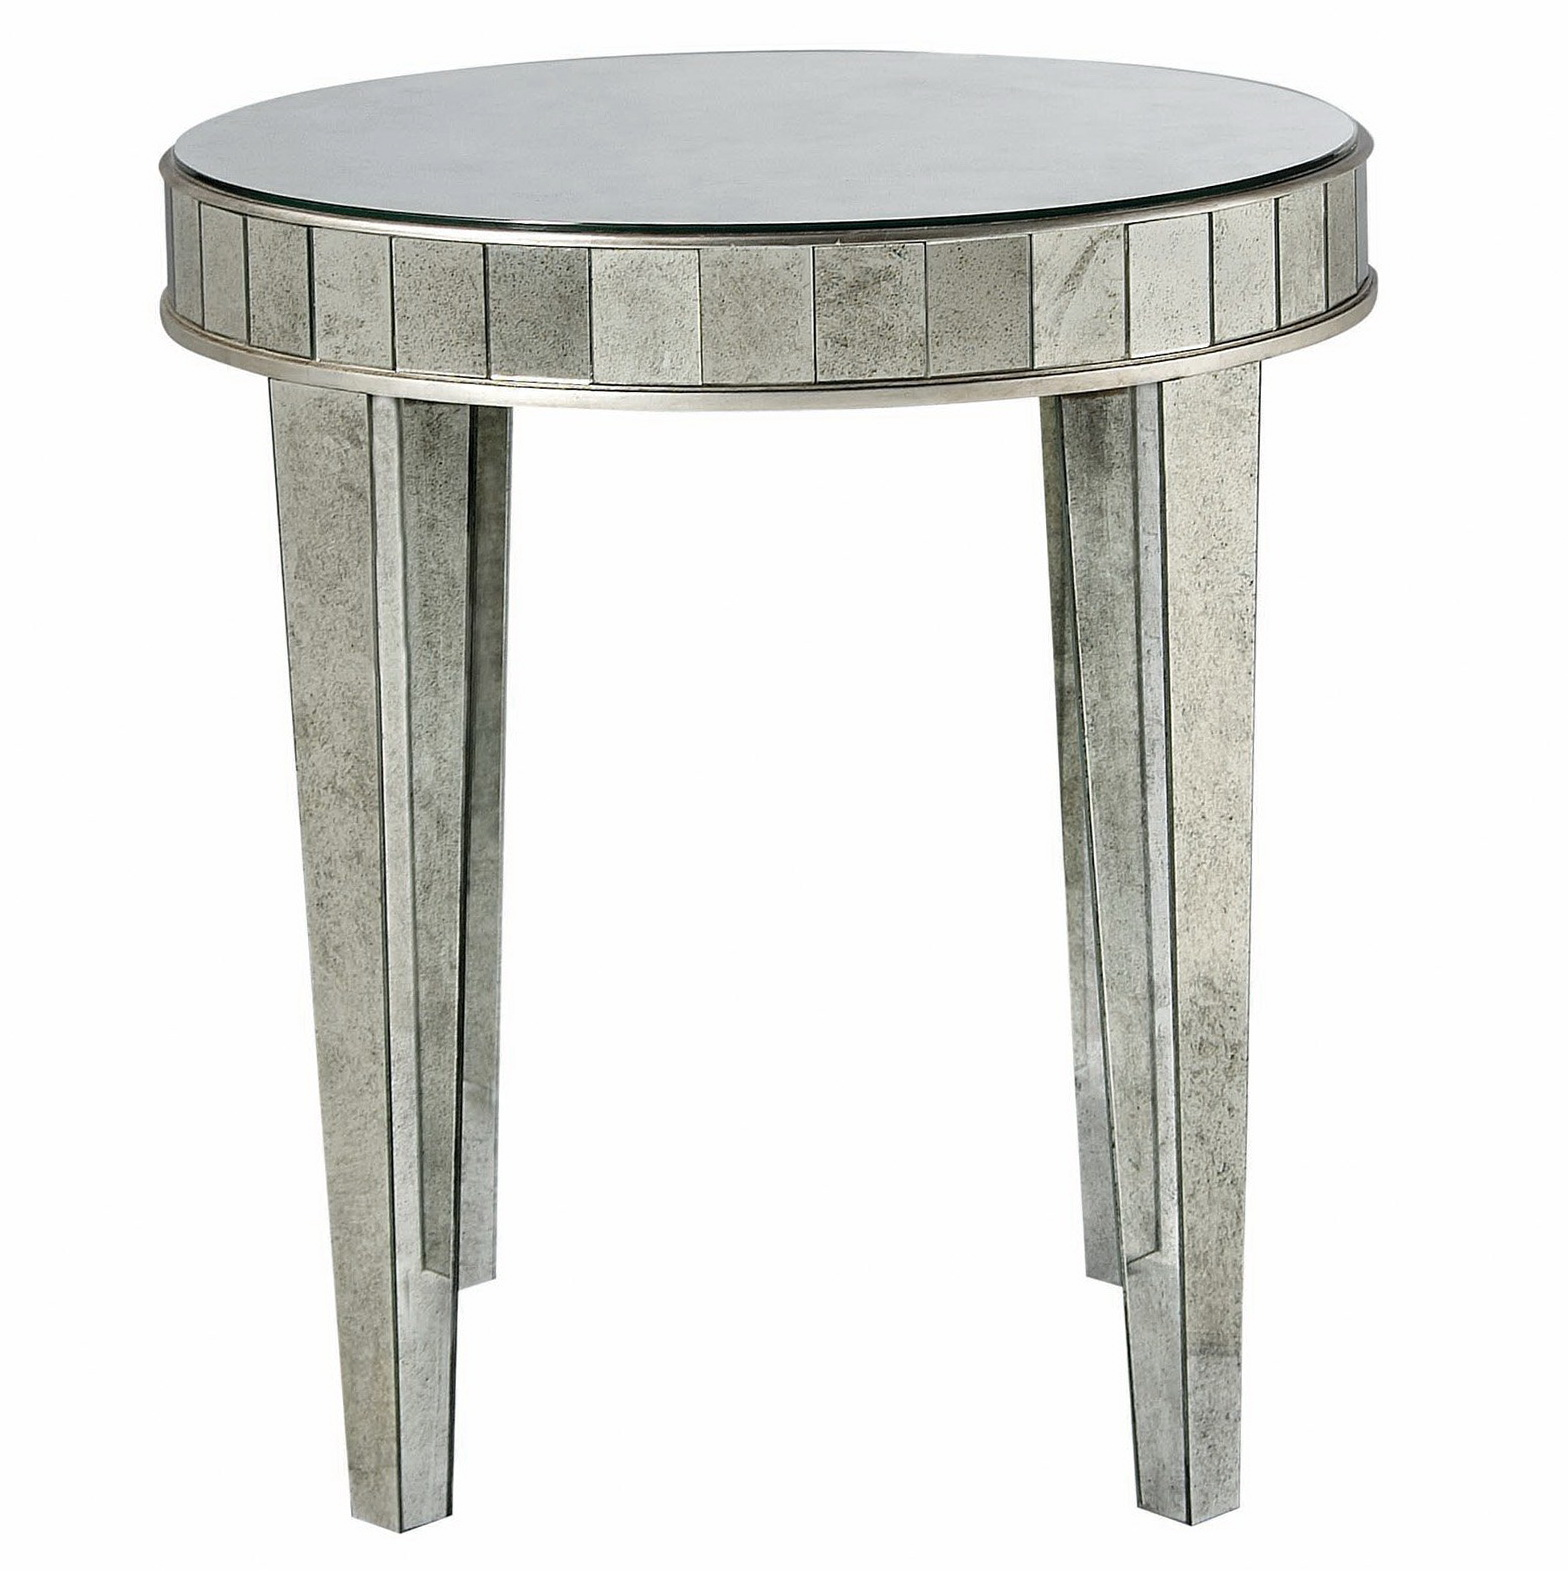 Round Mirrored Side Accent End Tables Home Design Ideas